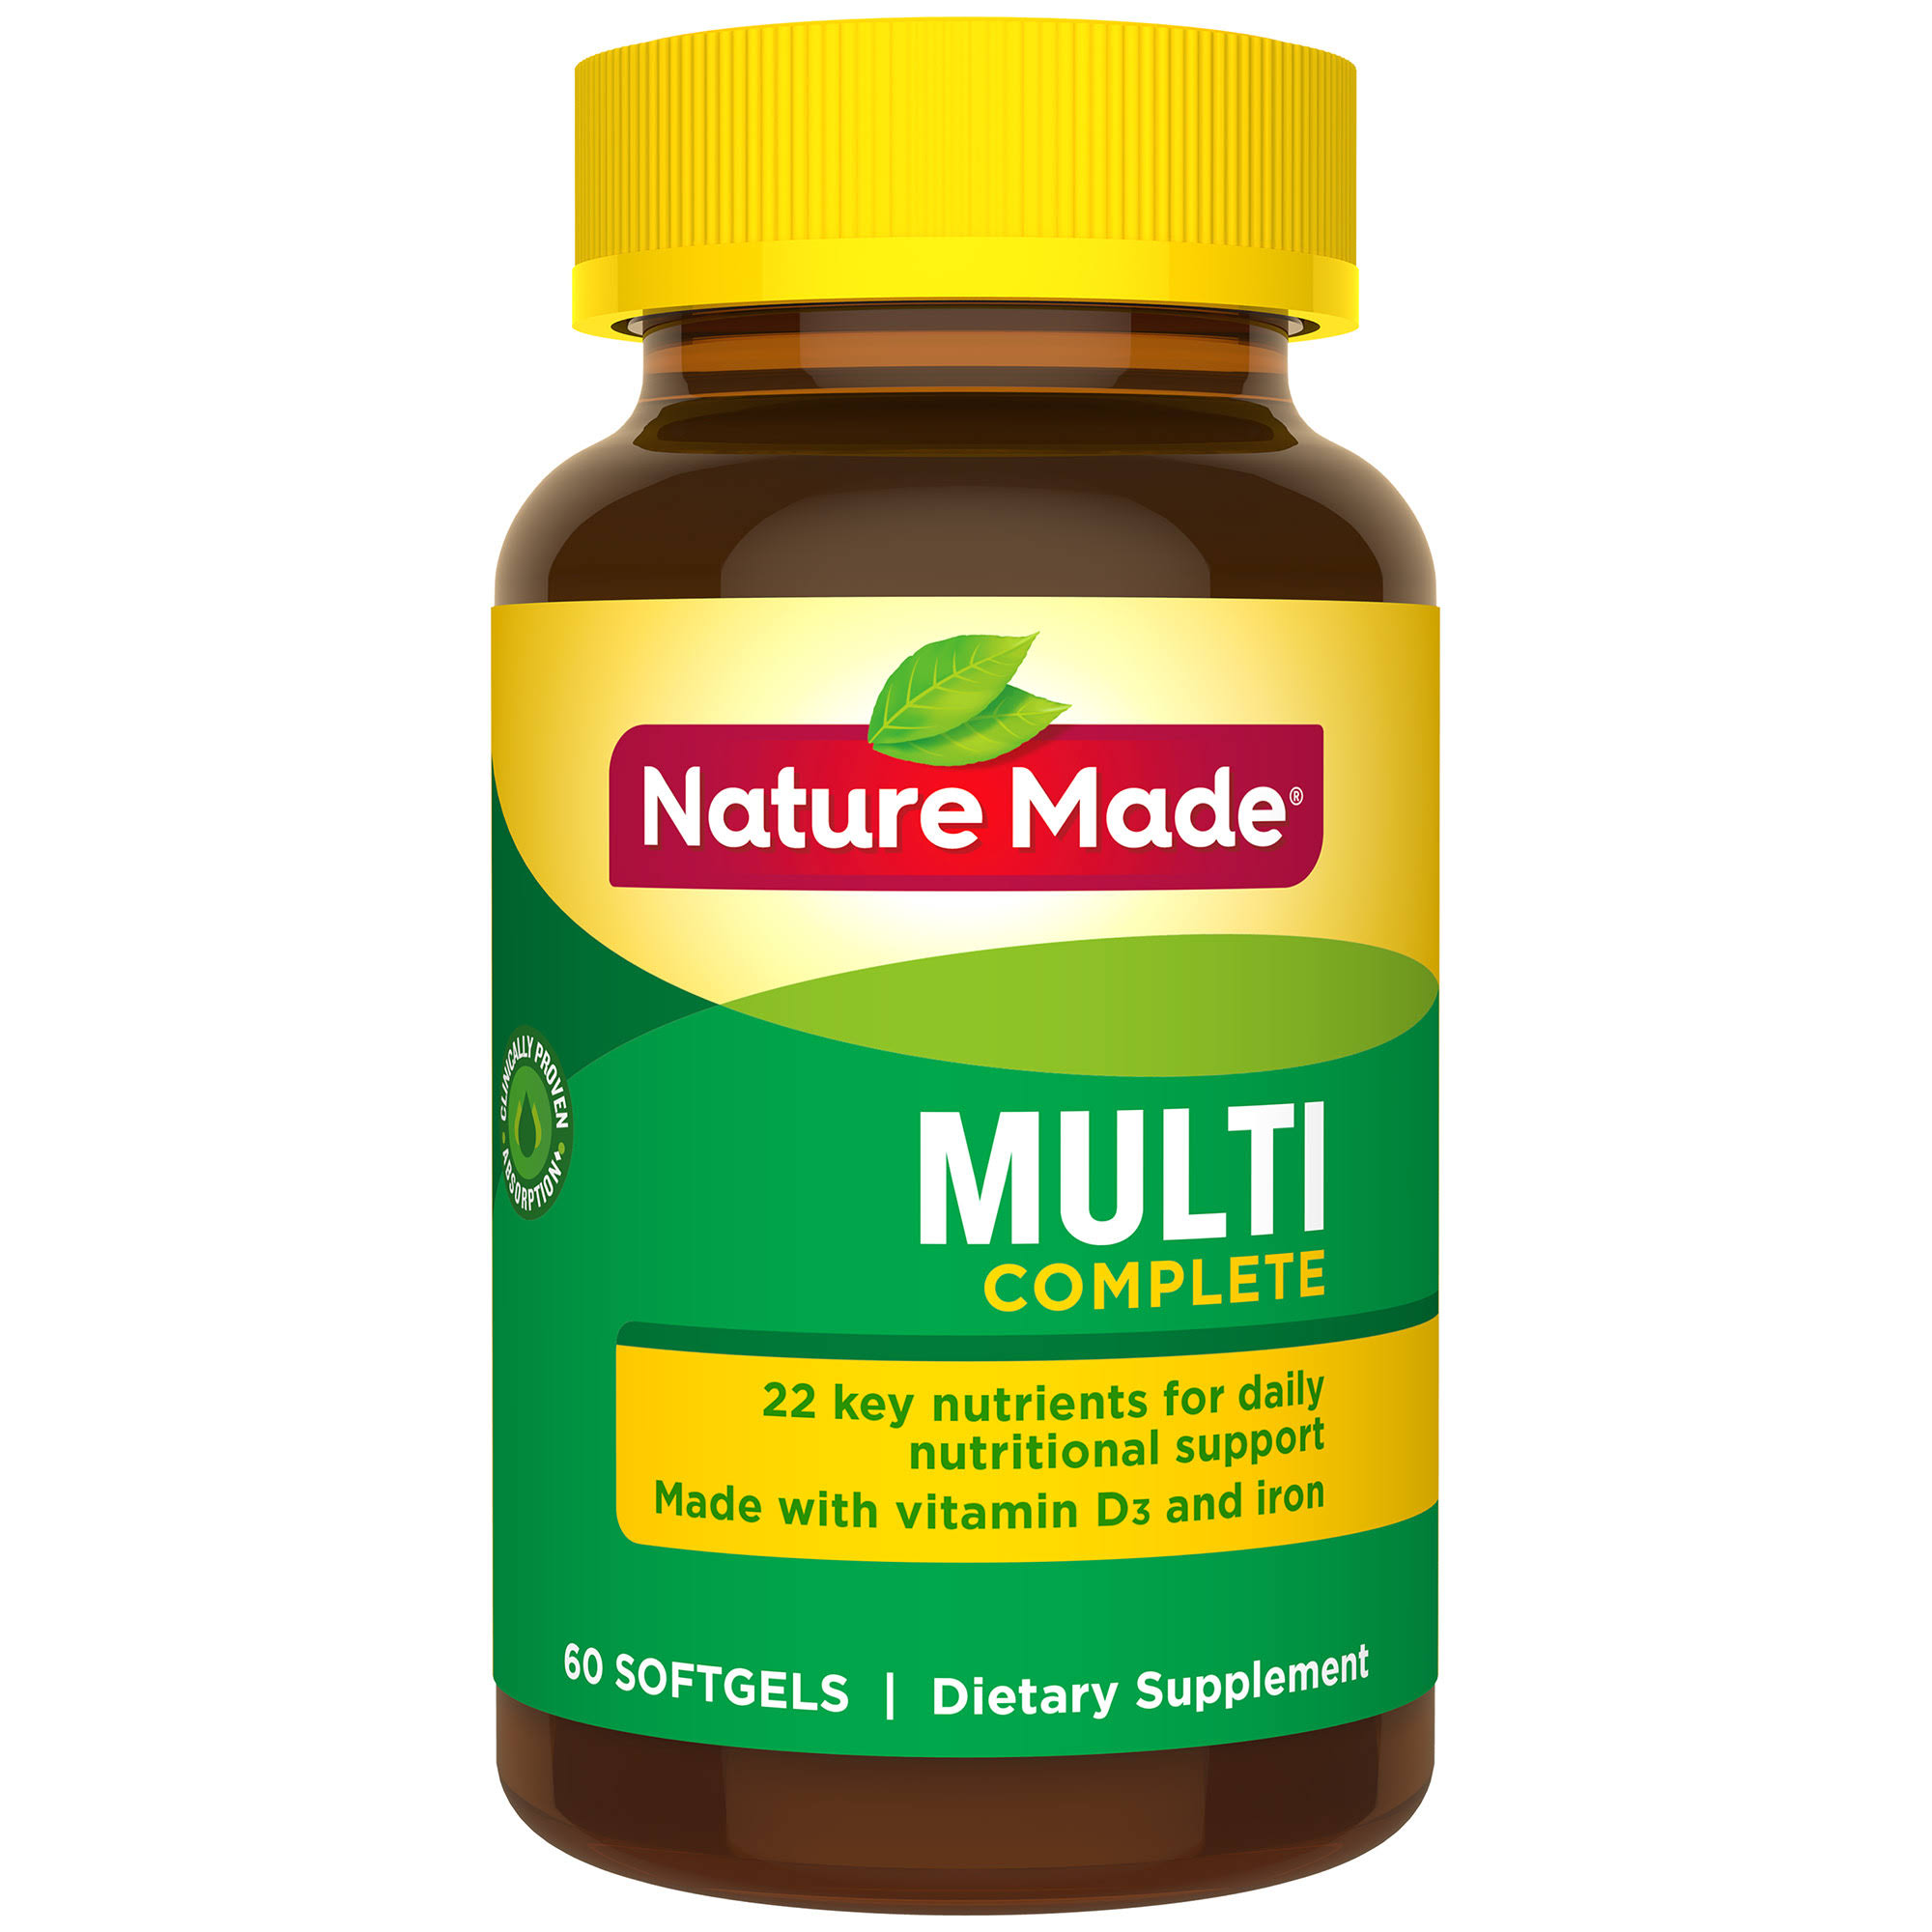 Nature Made Multi Complete Dietary Supplement - 60ct